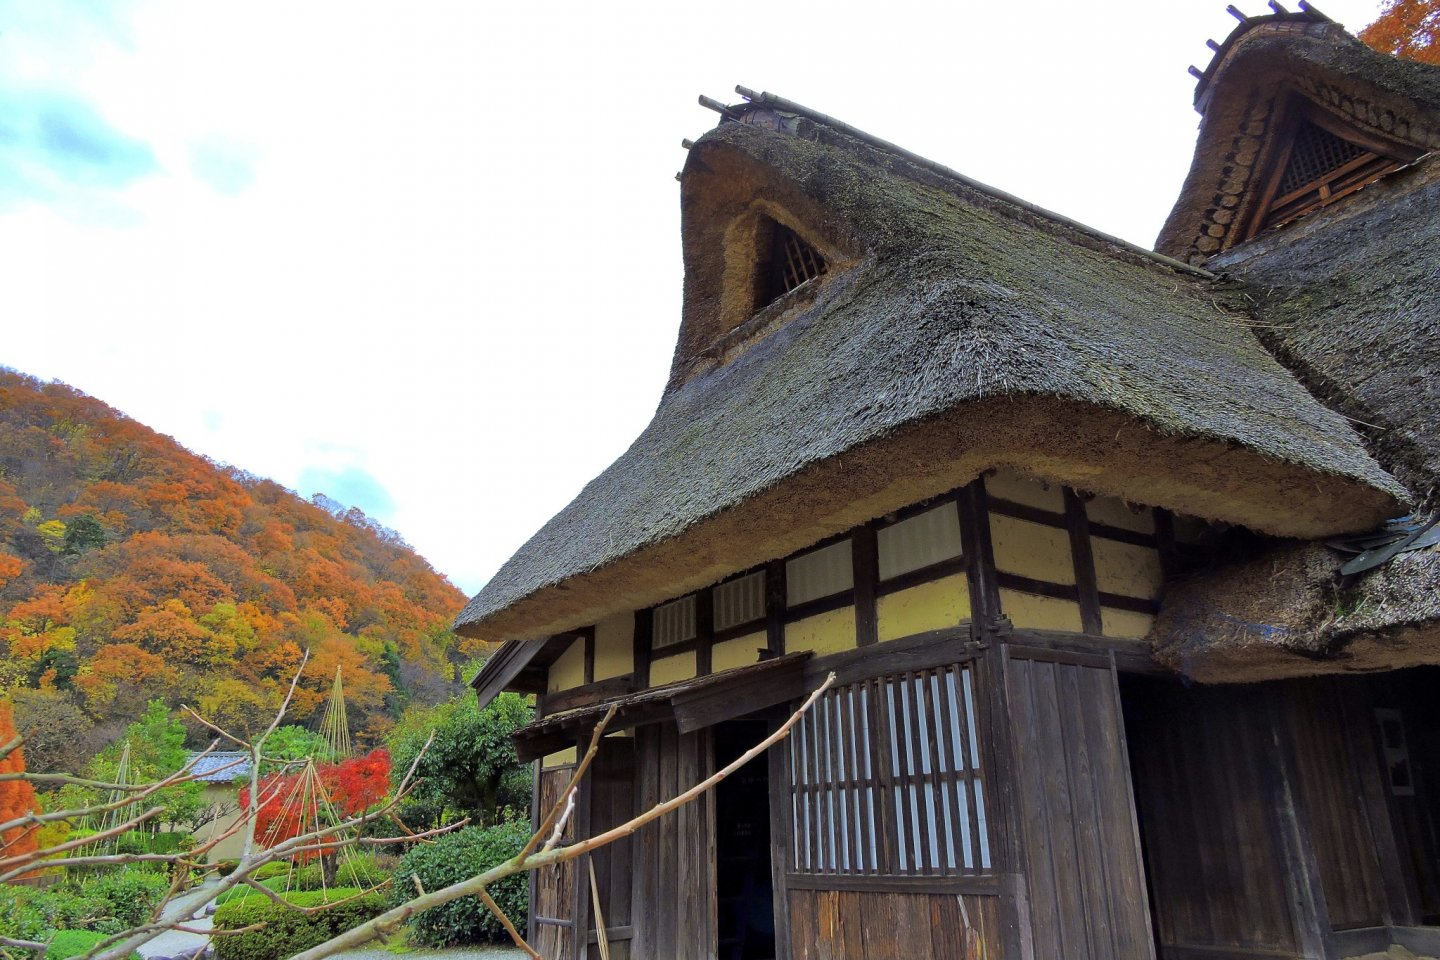 Old Japanese house with thatched roof at Osagoe Folk Village Museum in Fukui